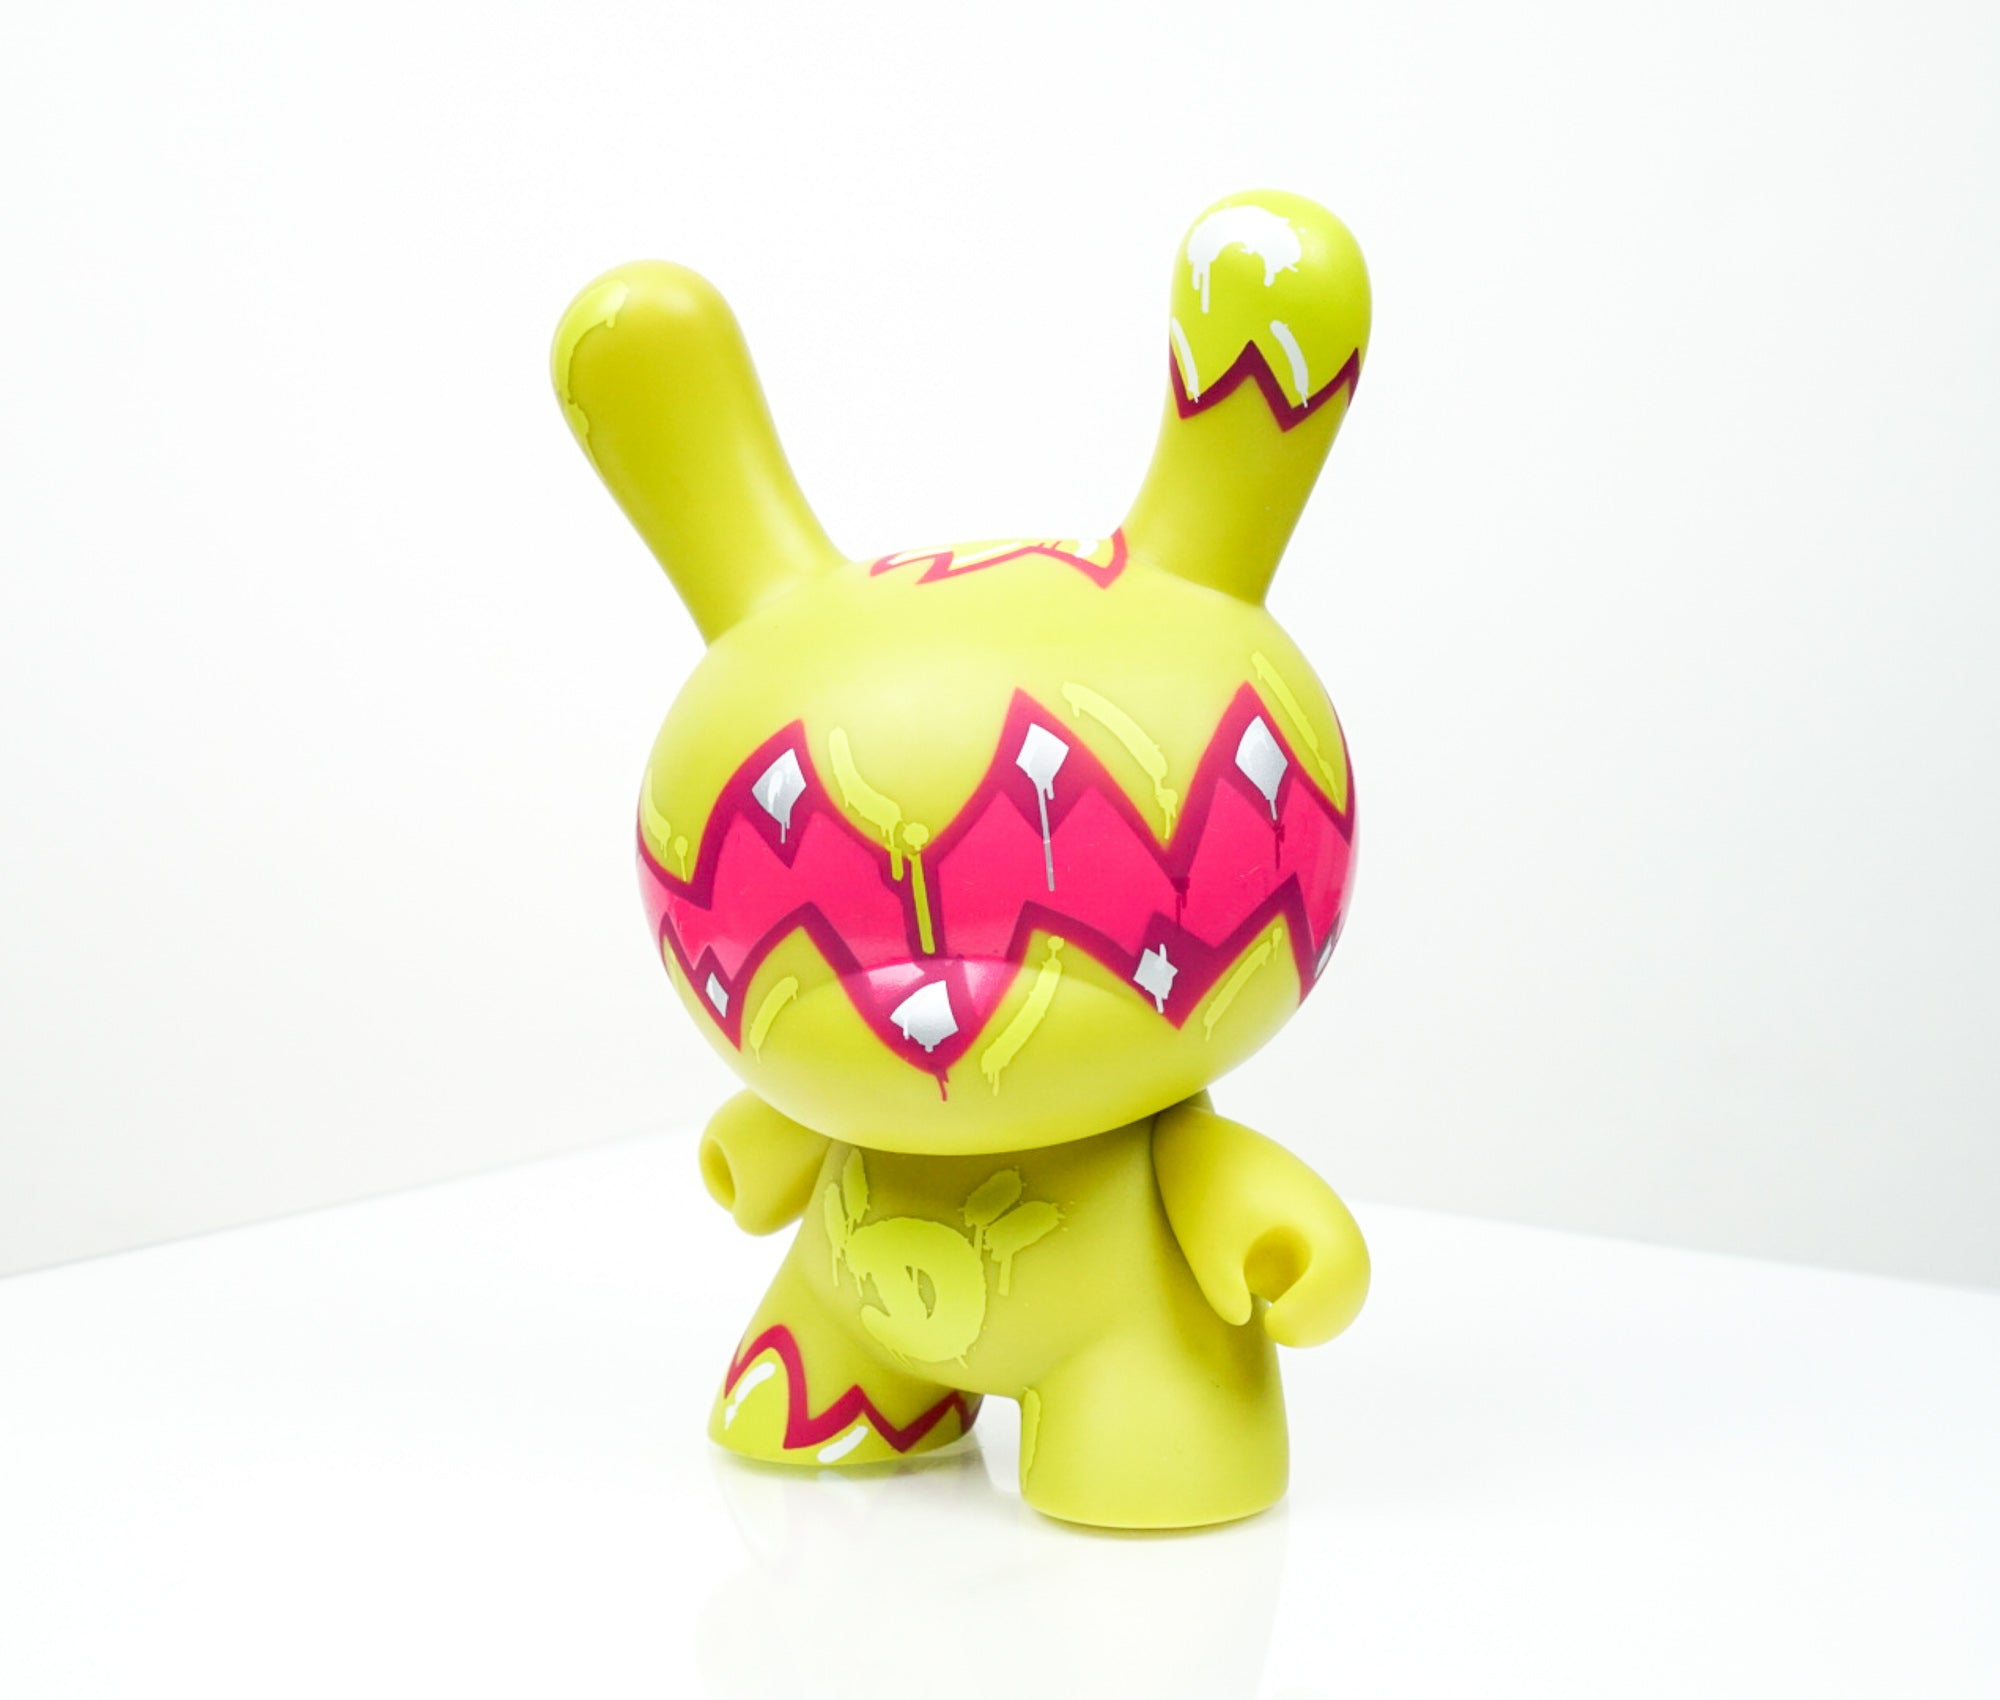 """8in Dunny - Green"" by MIST x Kidrobot"